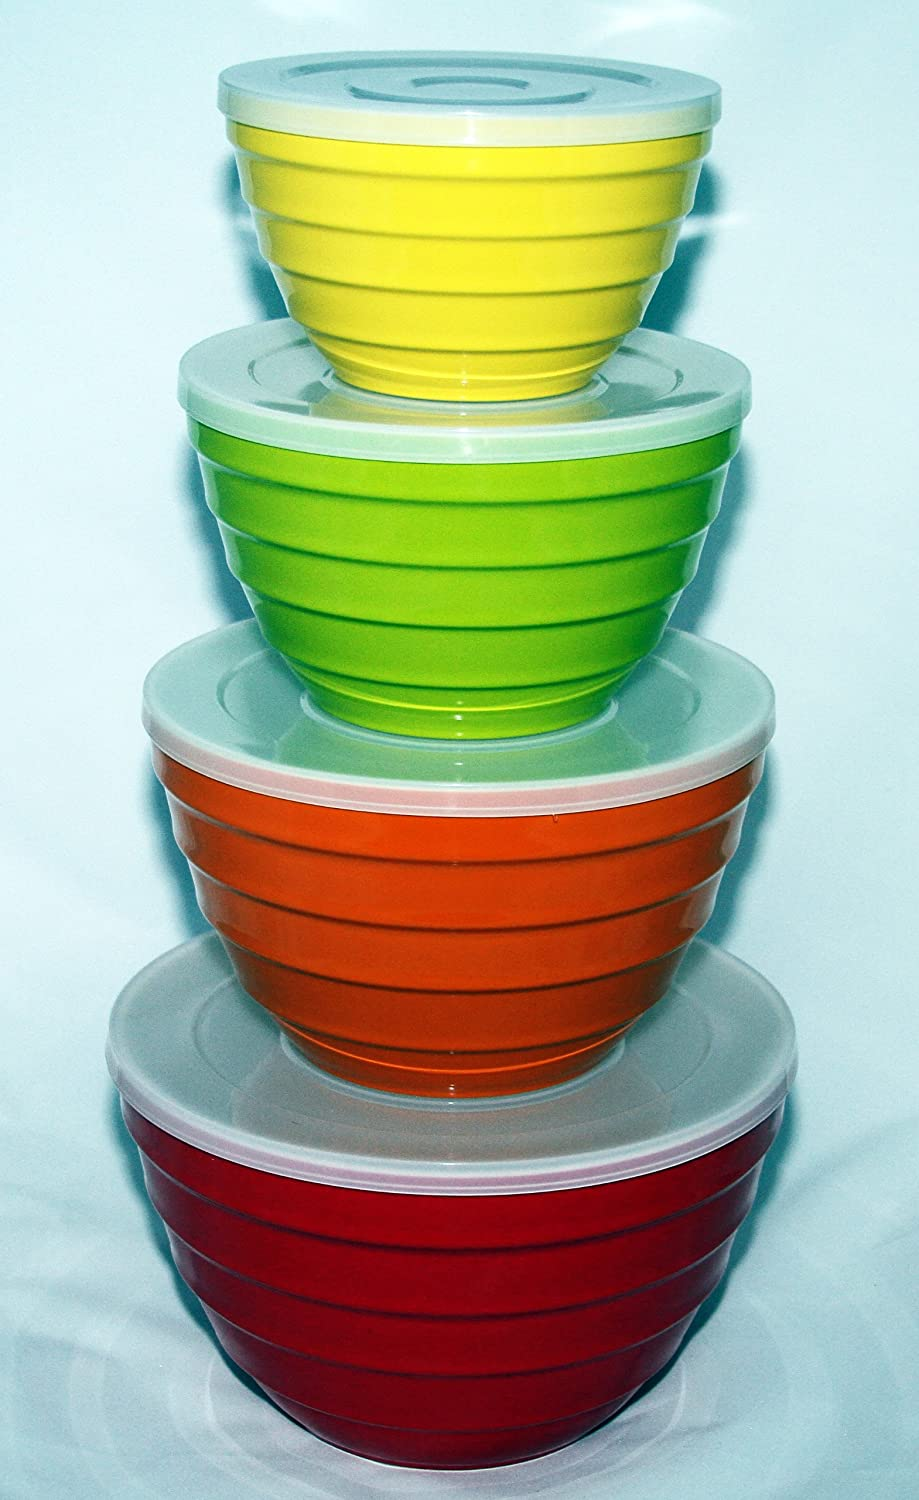 Nesting Bowl Set Stacked Bowls Ready For Baking Day